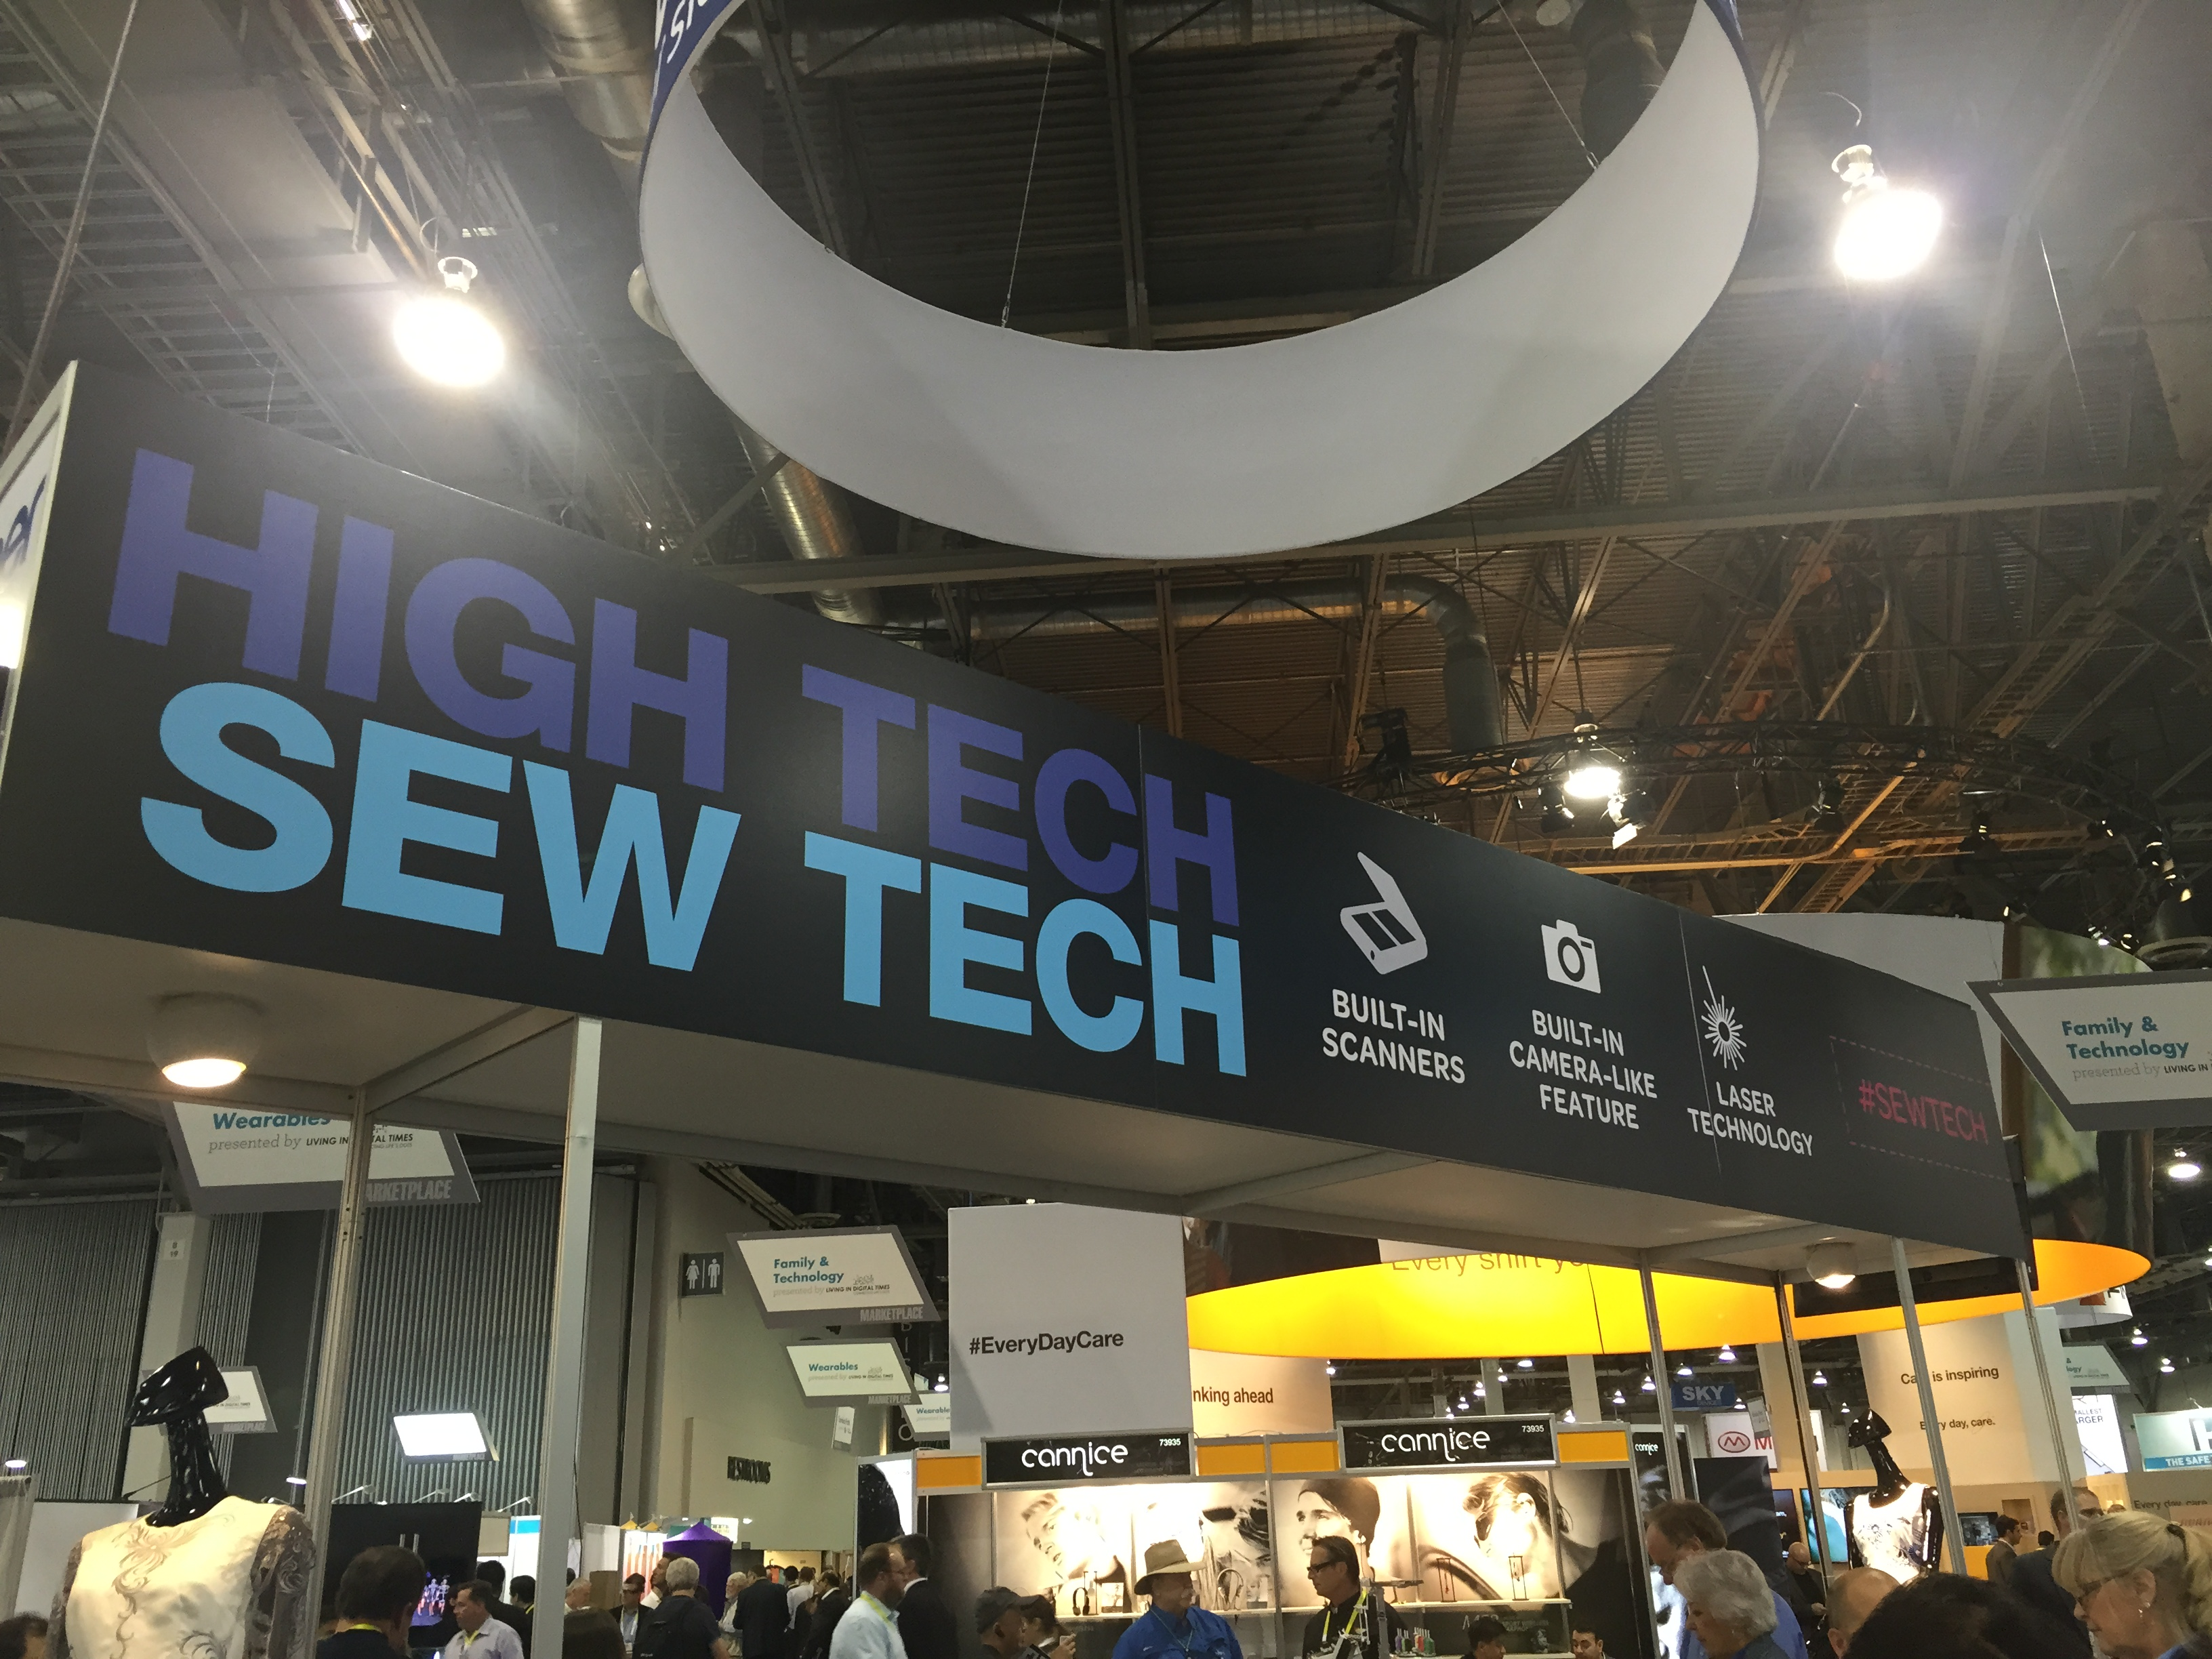 Brother_Sew_Tech_booth